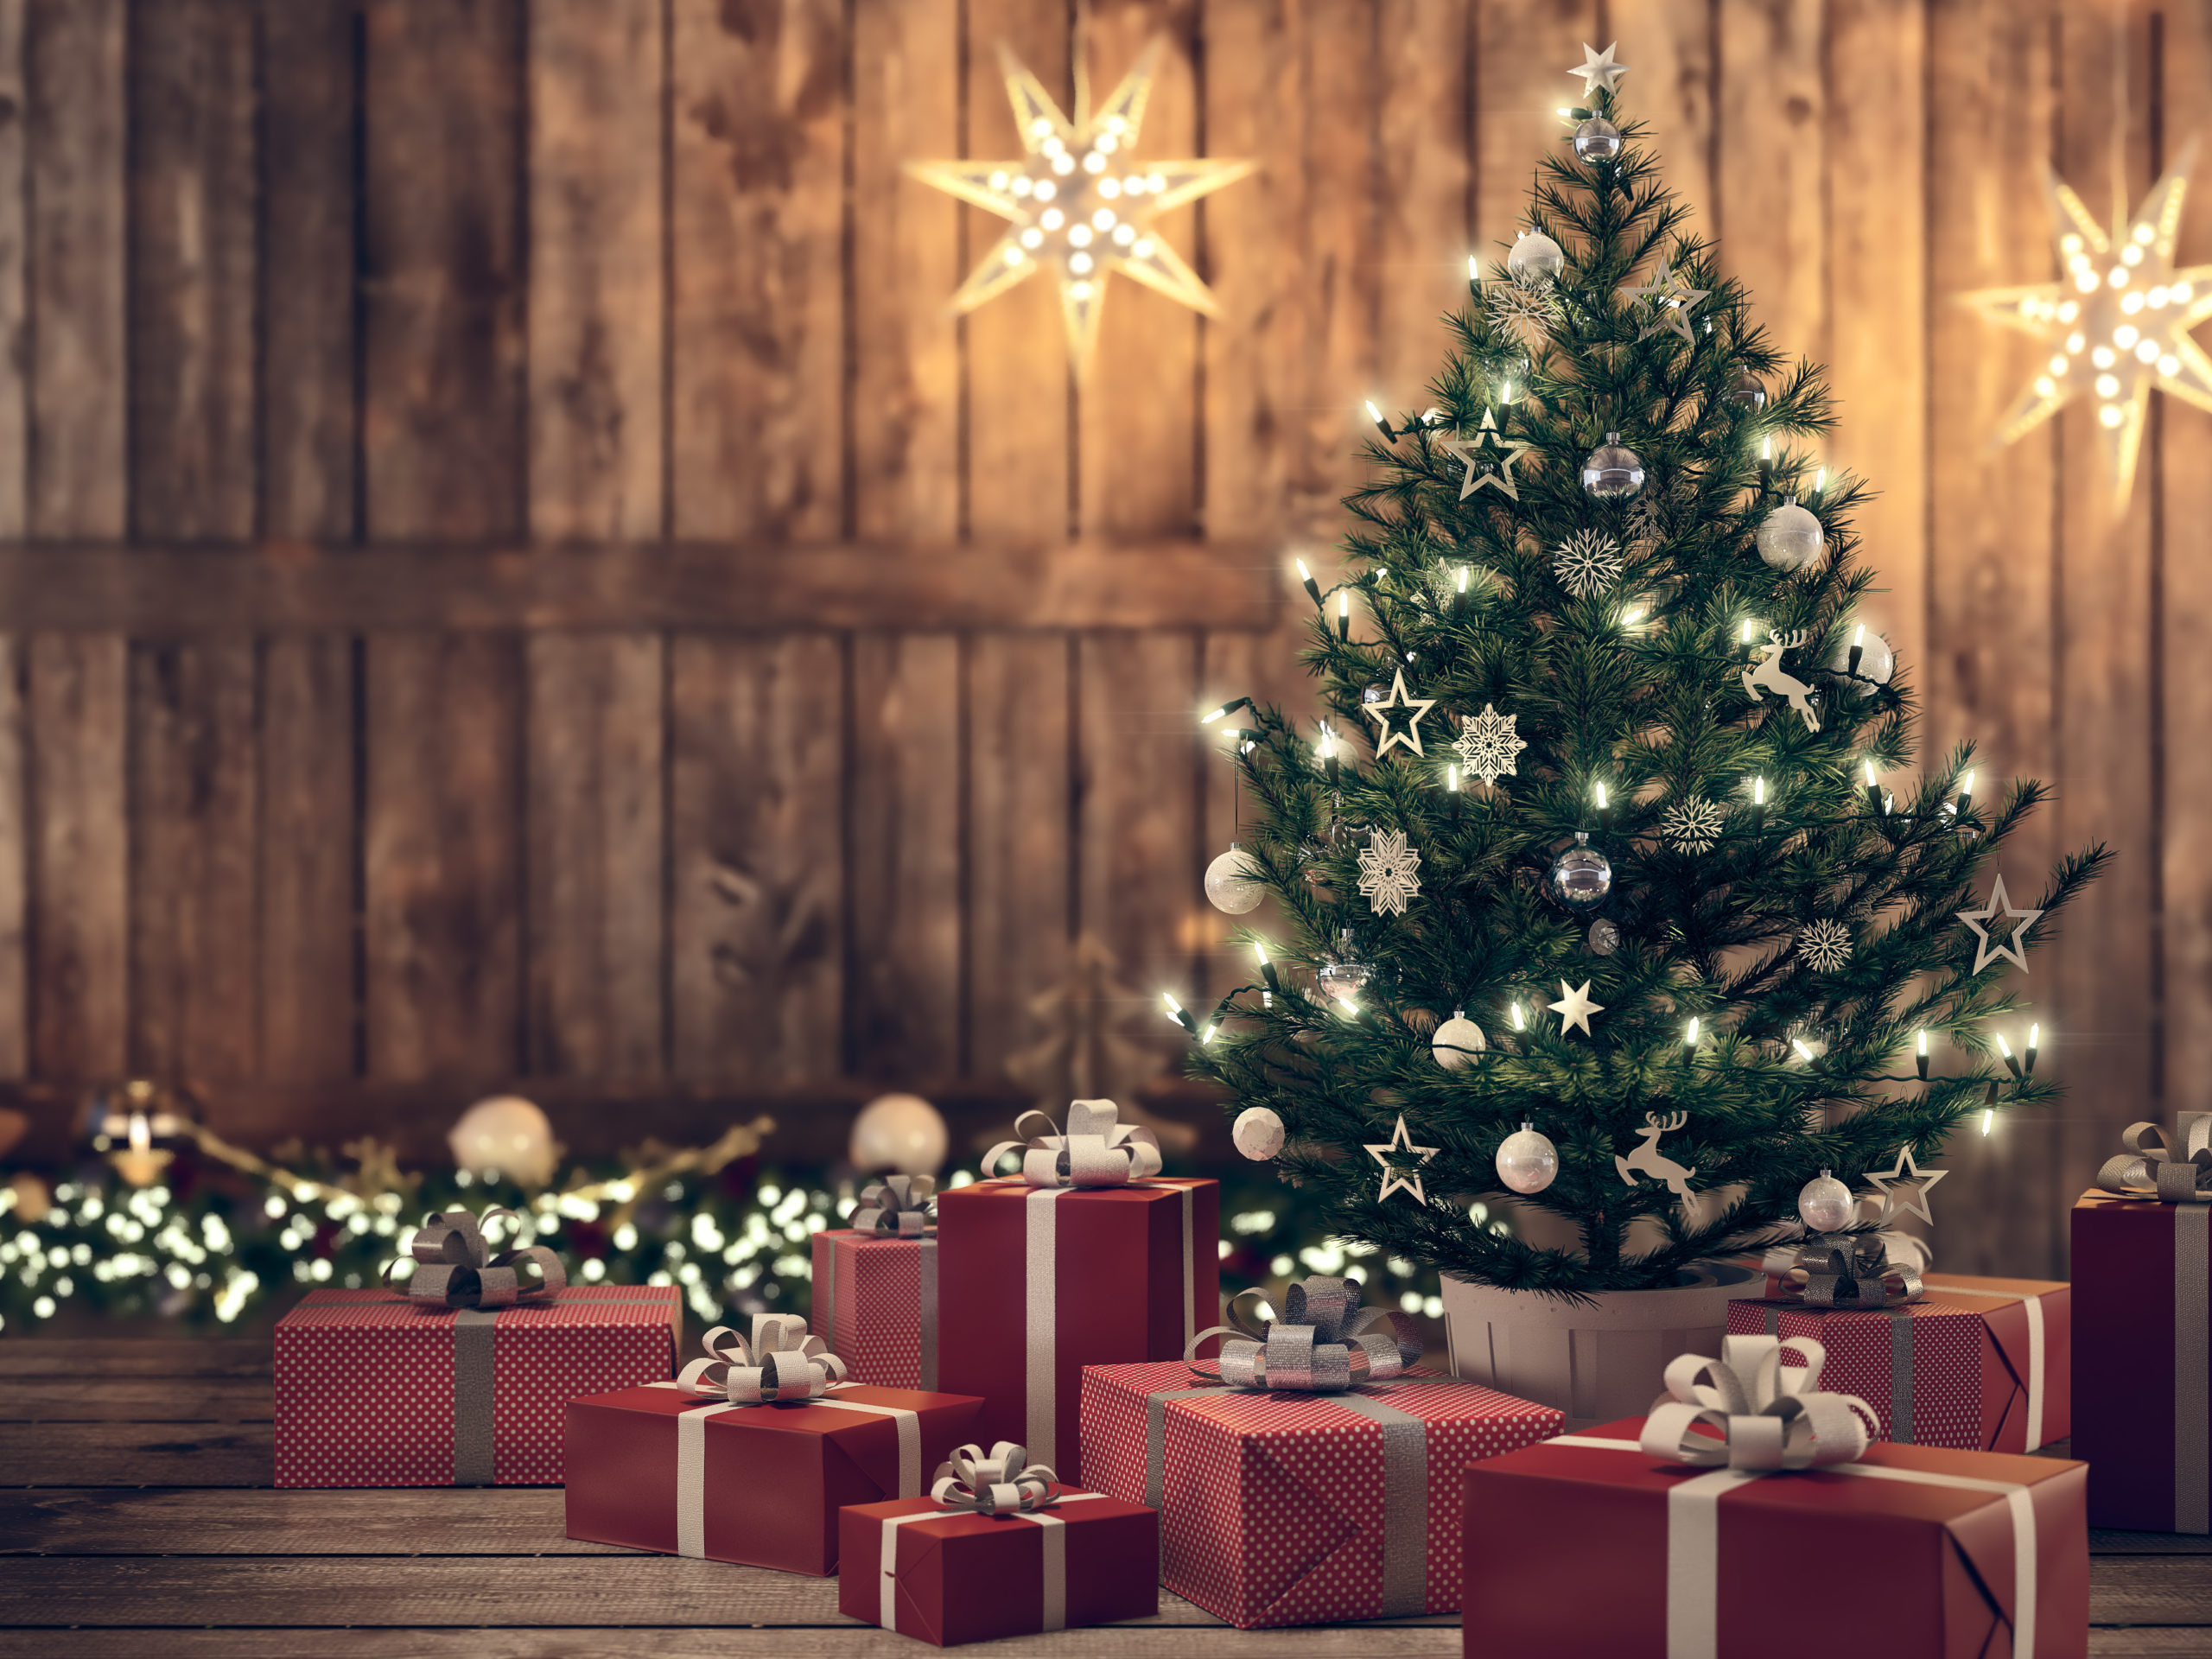 FIXING COMMON PROBLEMS WITH ARTIFICIALPRE LIT CHRISTMAS TREES